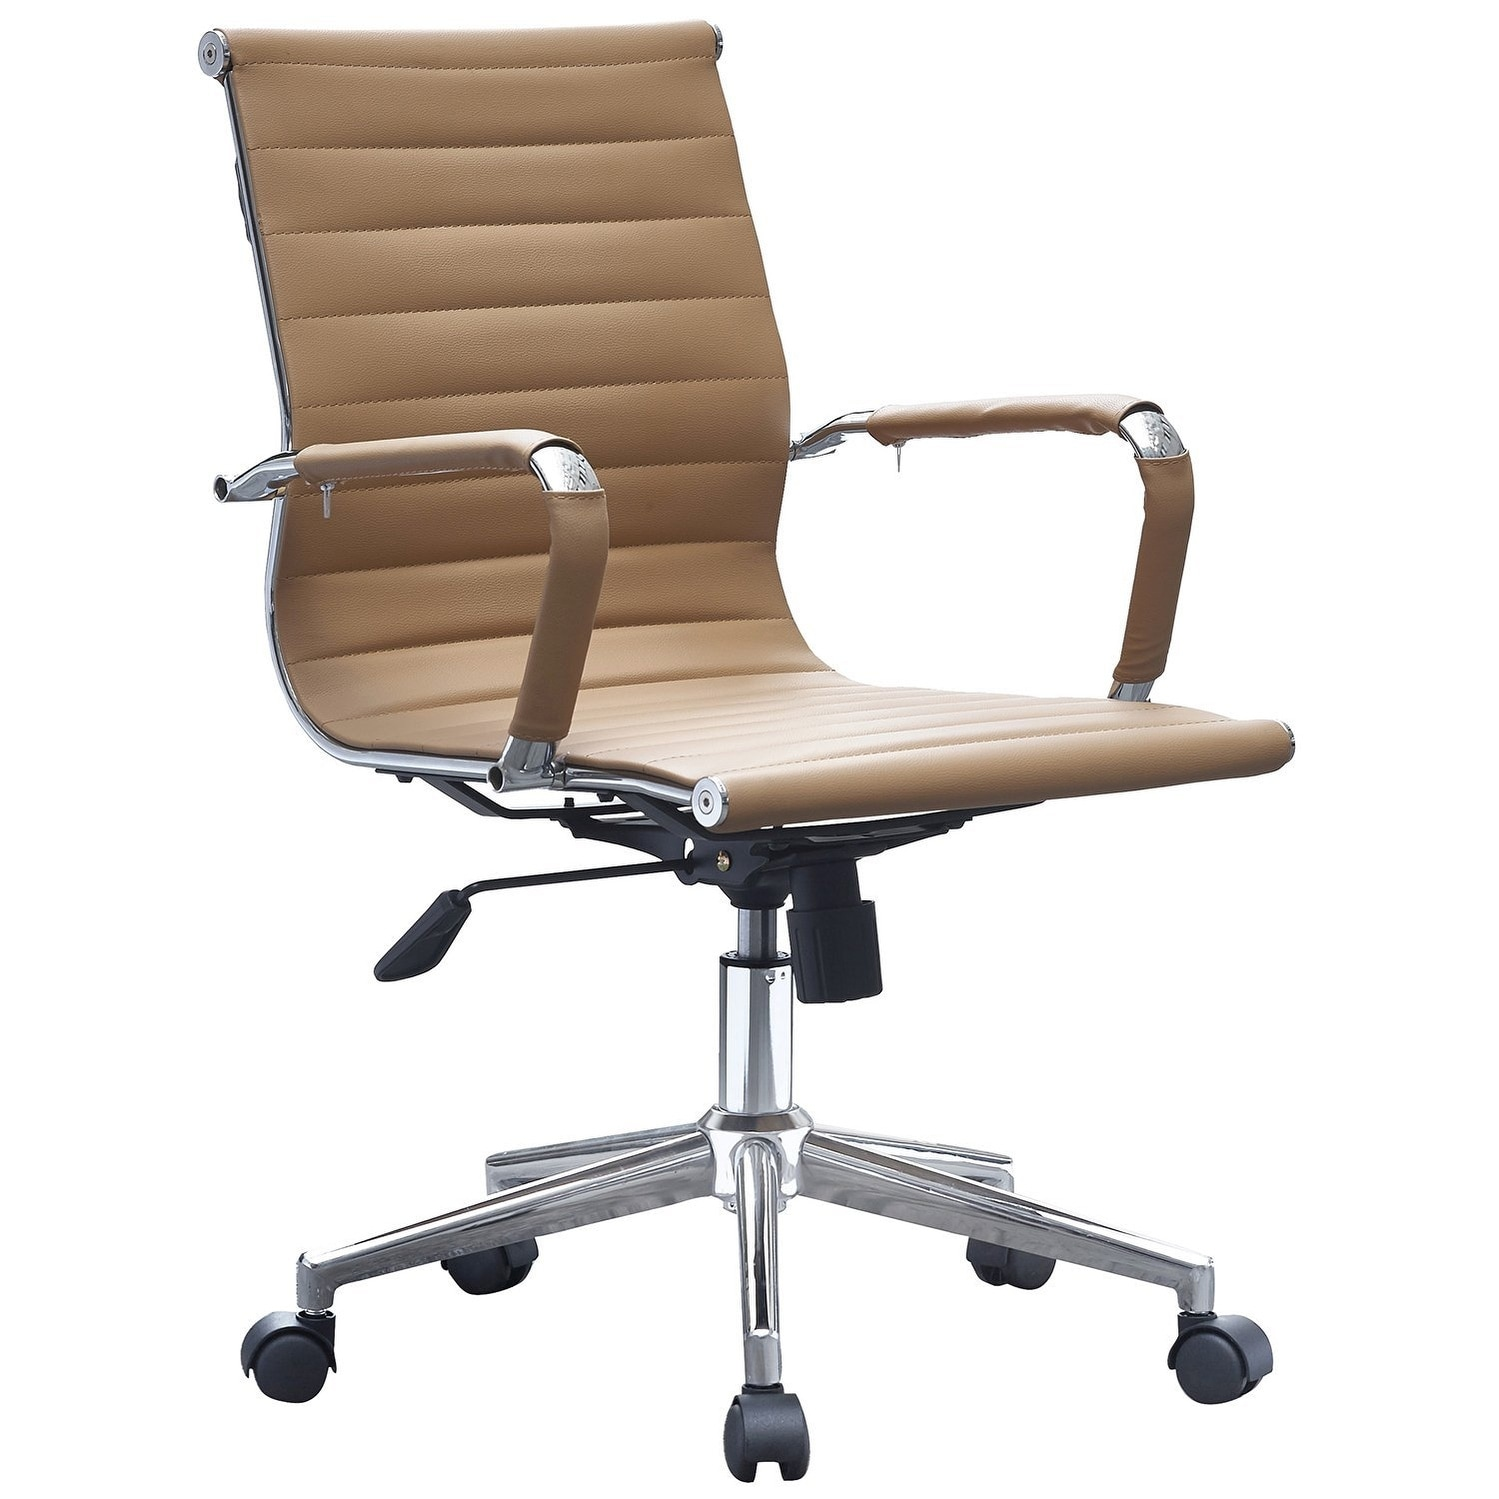 2xhome Tan Ergonomic Designer Mid Back PU Leather Executive Office Chair  Ribbed Swivel Tilt Conference Room Boss Home Wheels